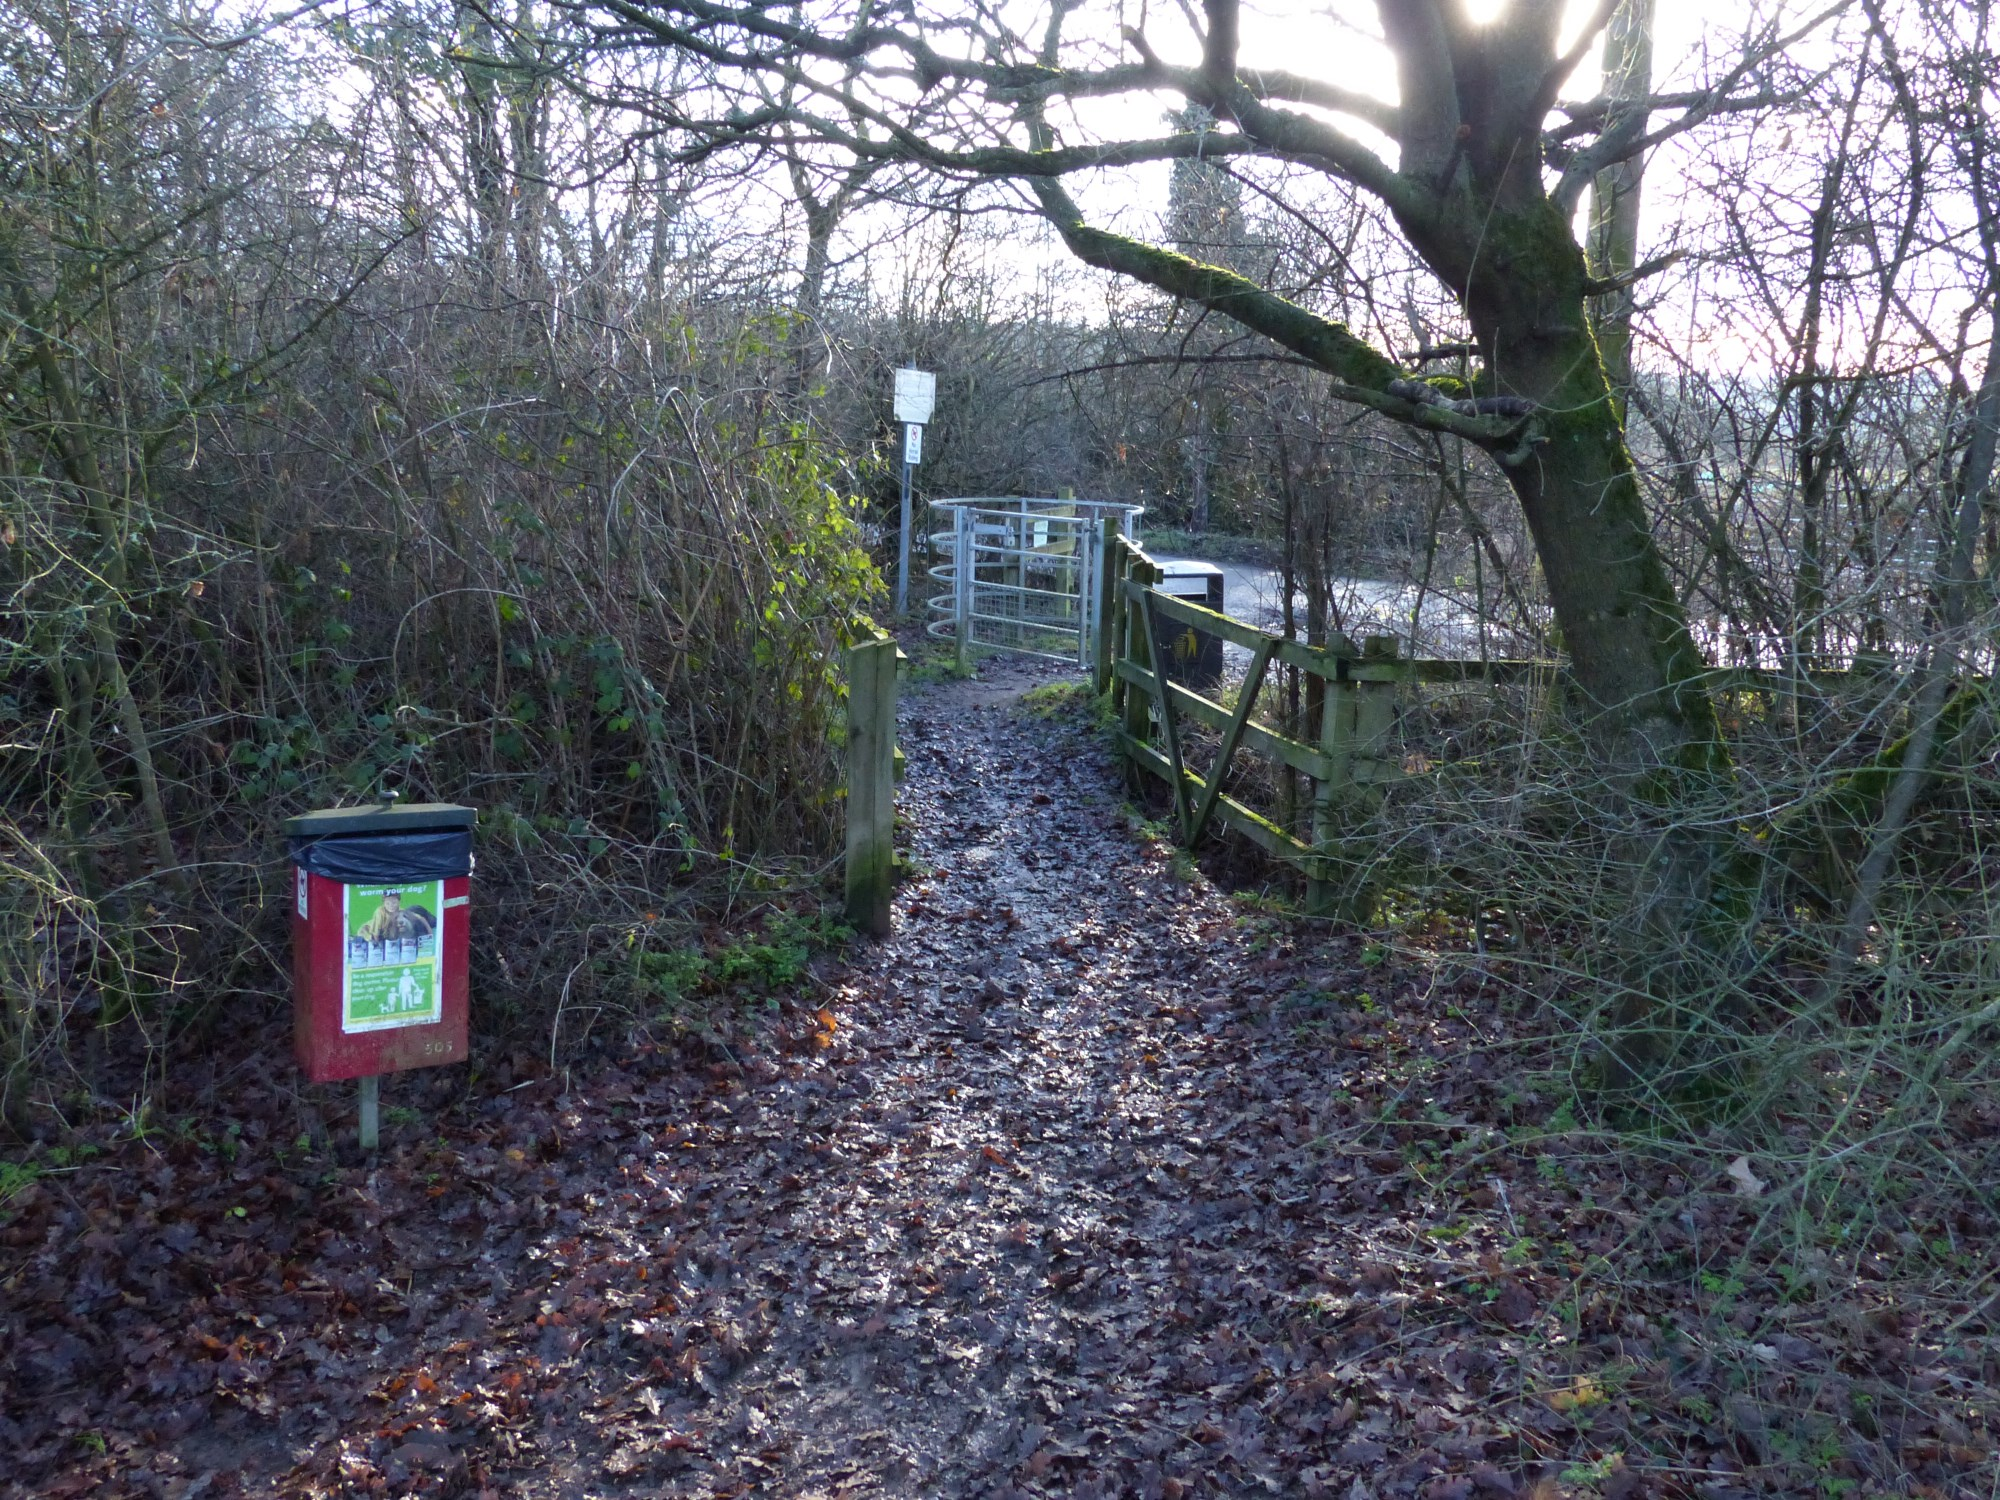 Gate at Wapley Bushes Nature Reserve